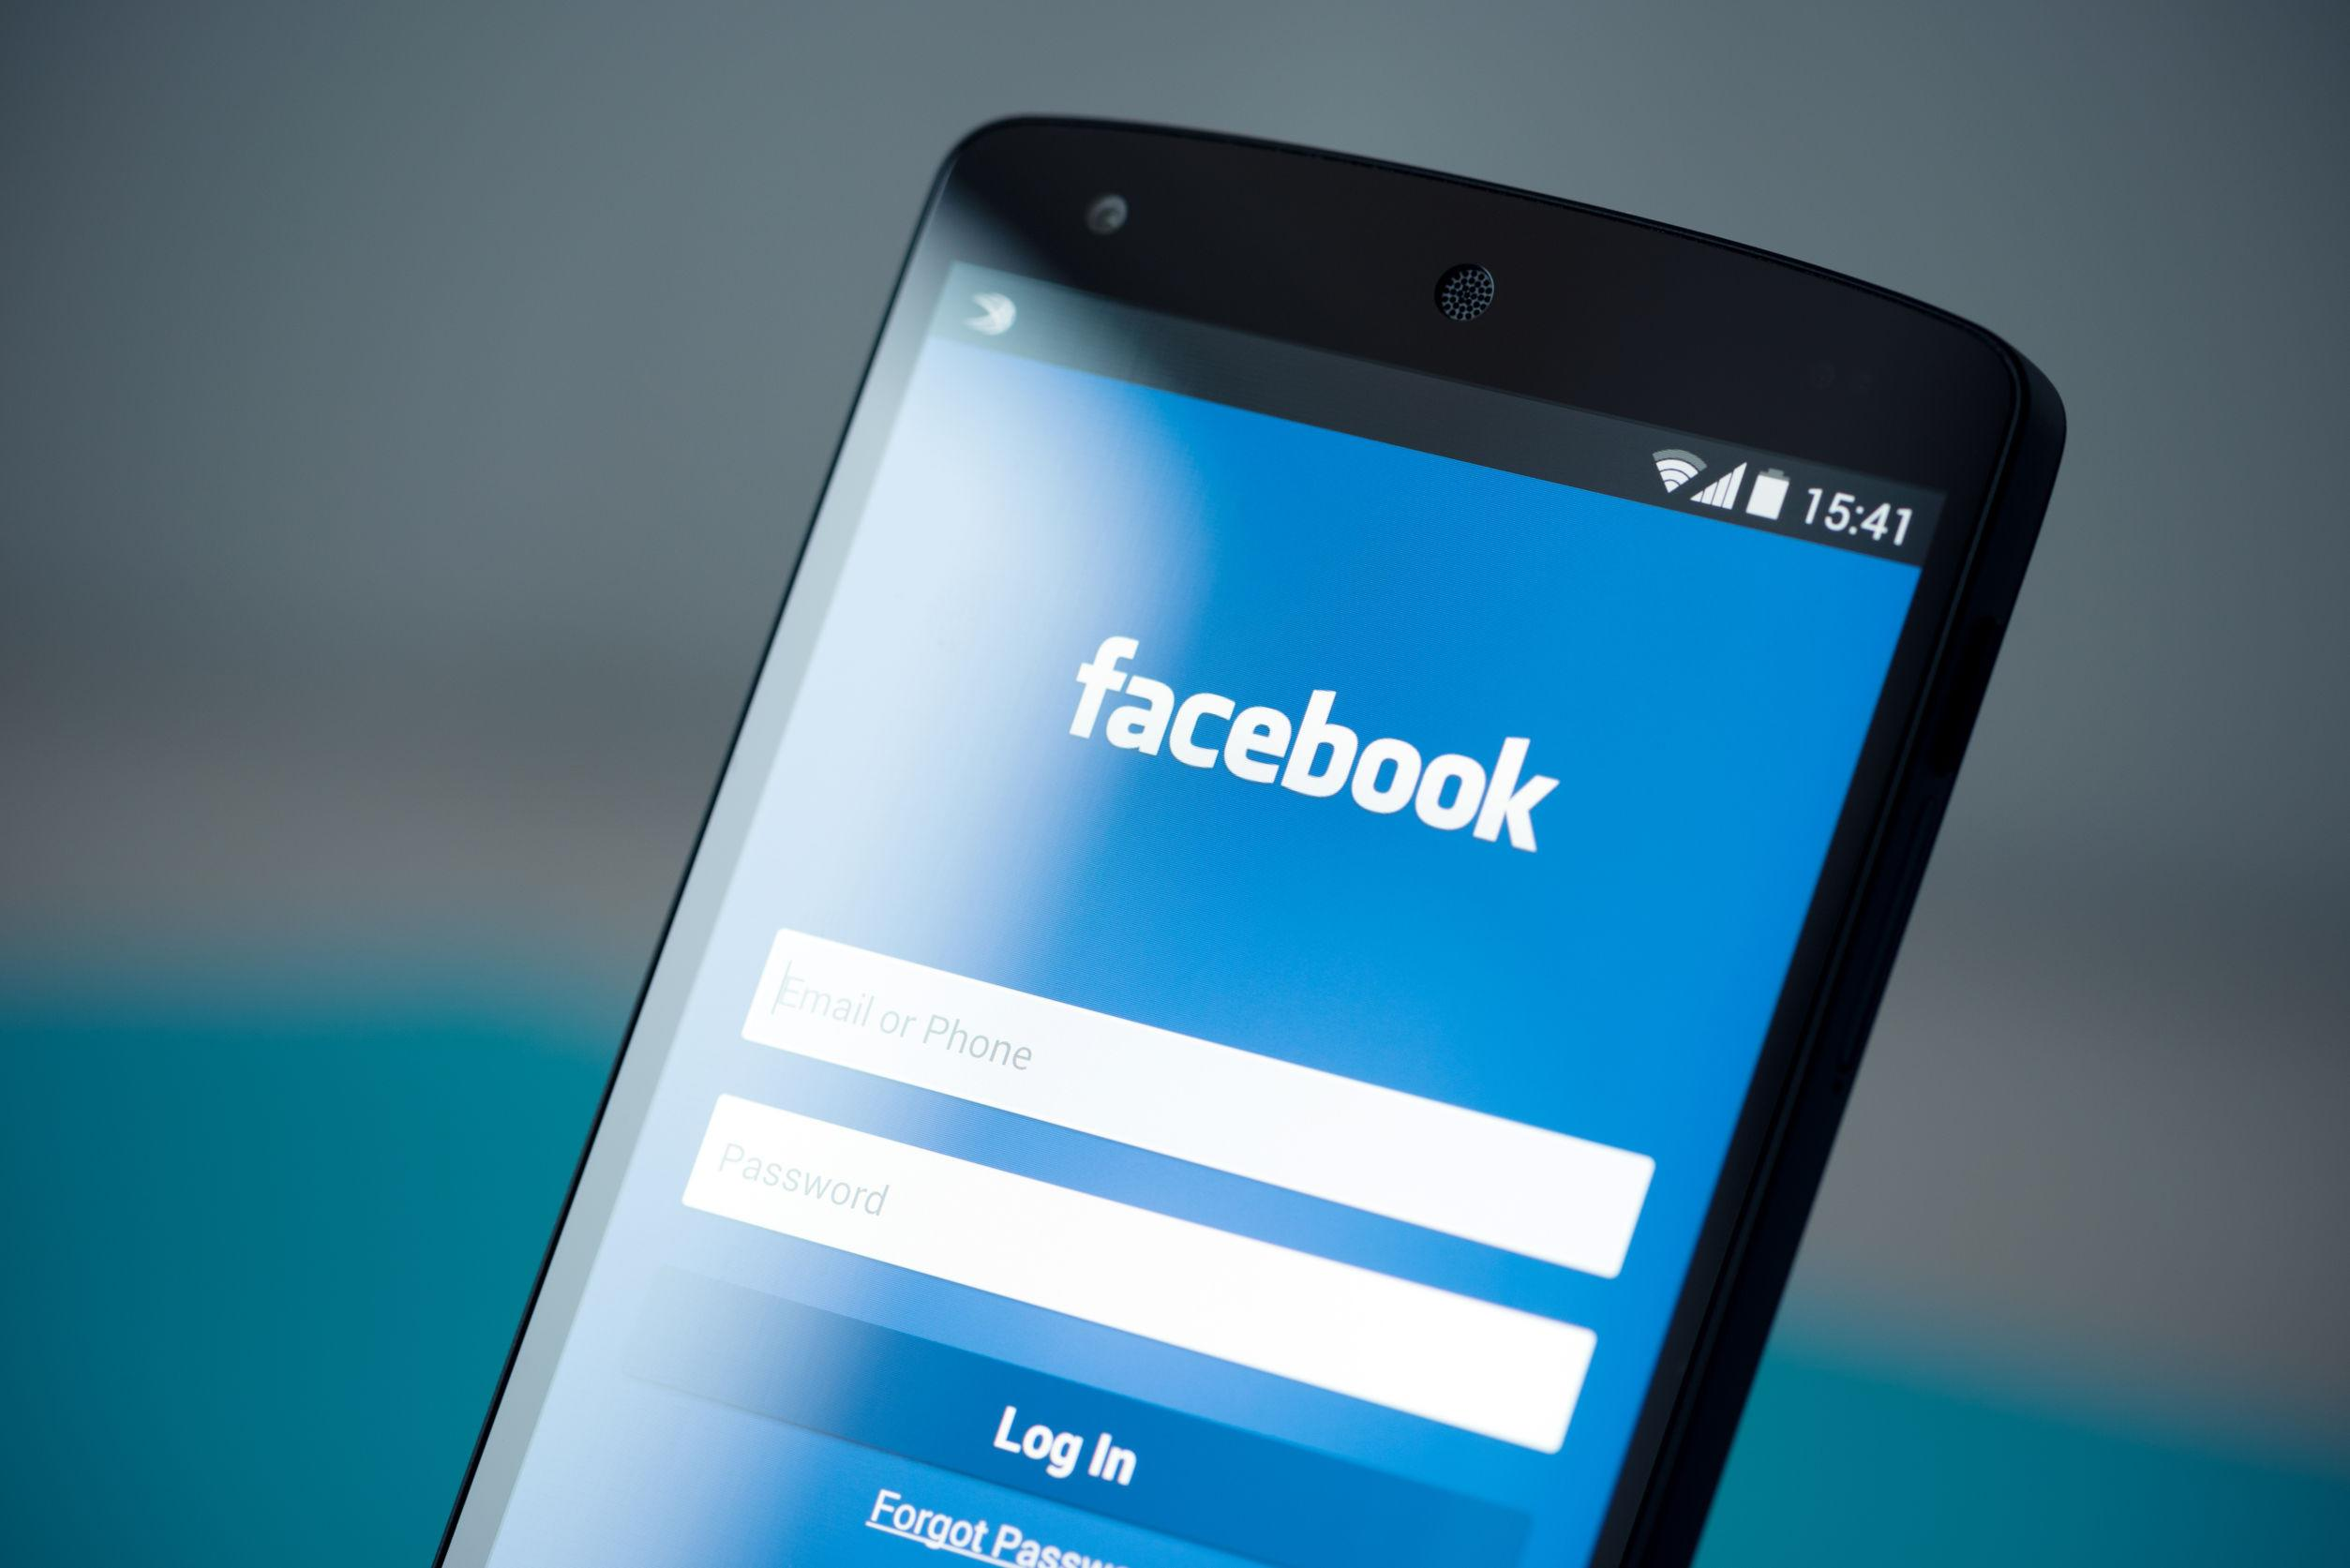 More than half of Facebook users now connect to the site with just a mobile phone